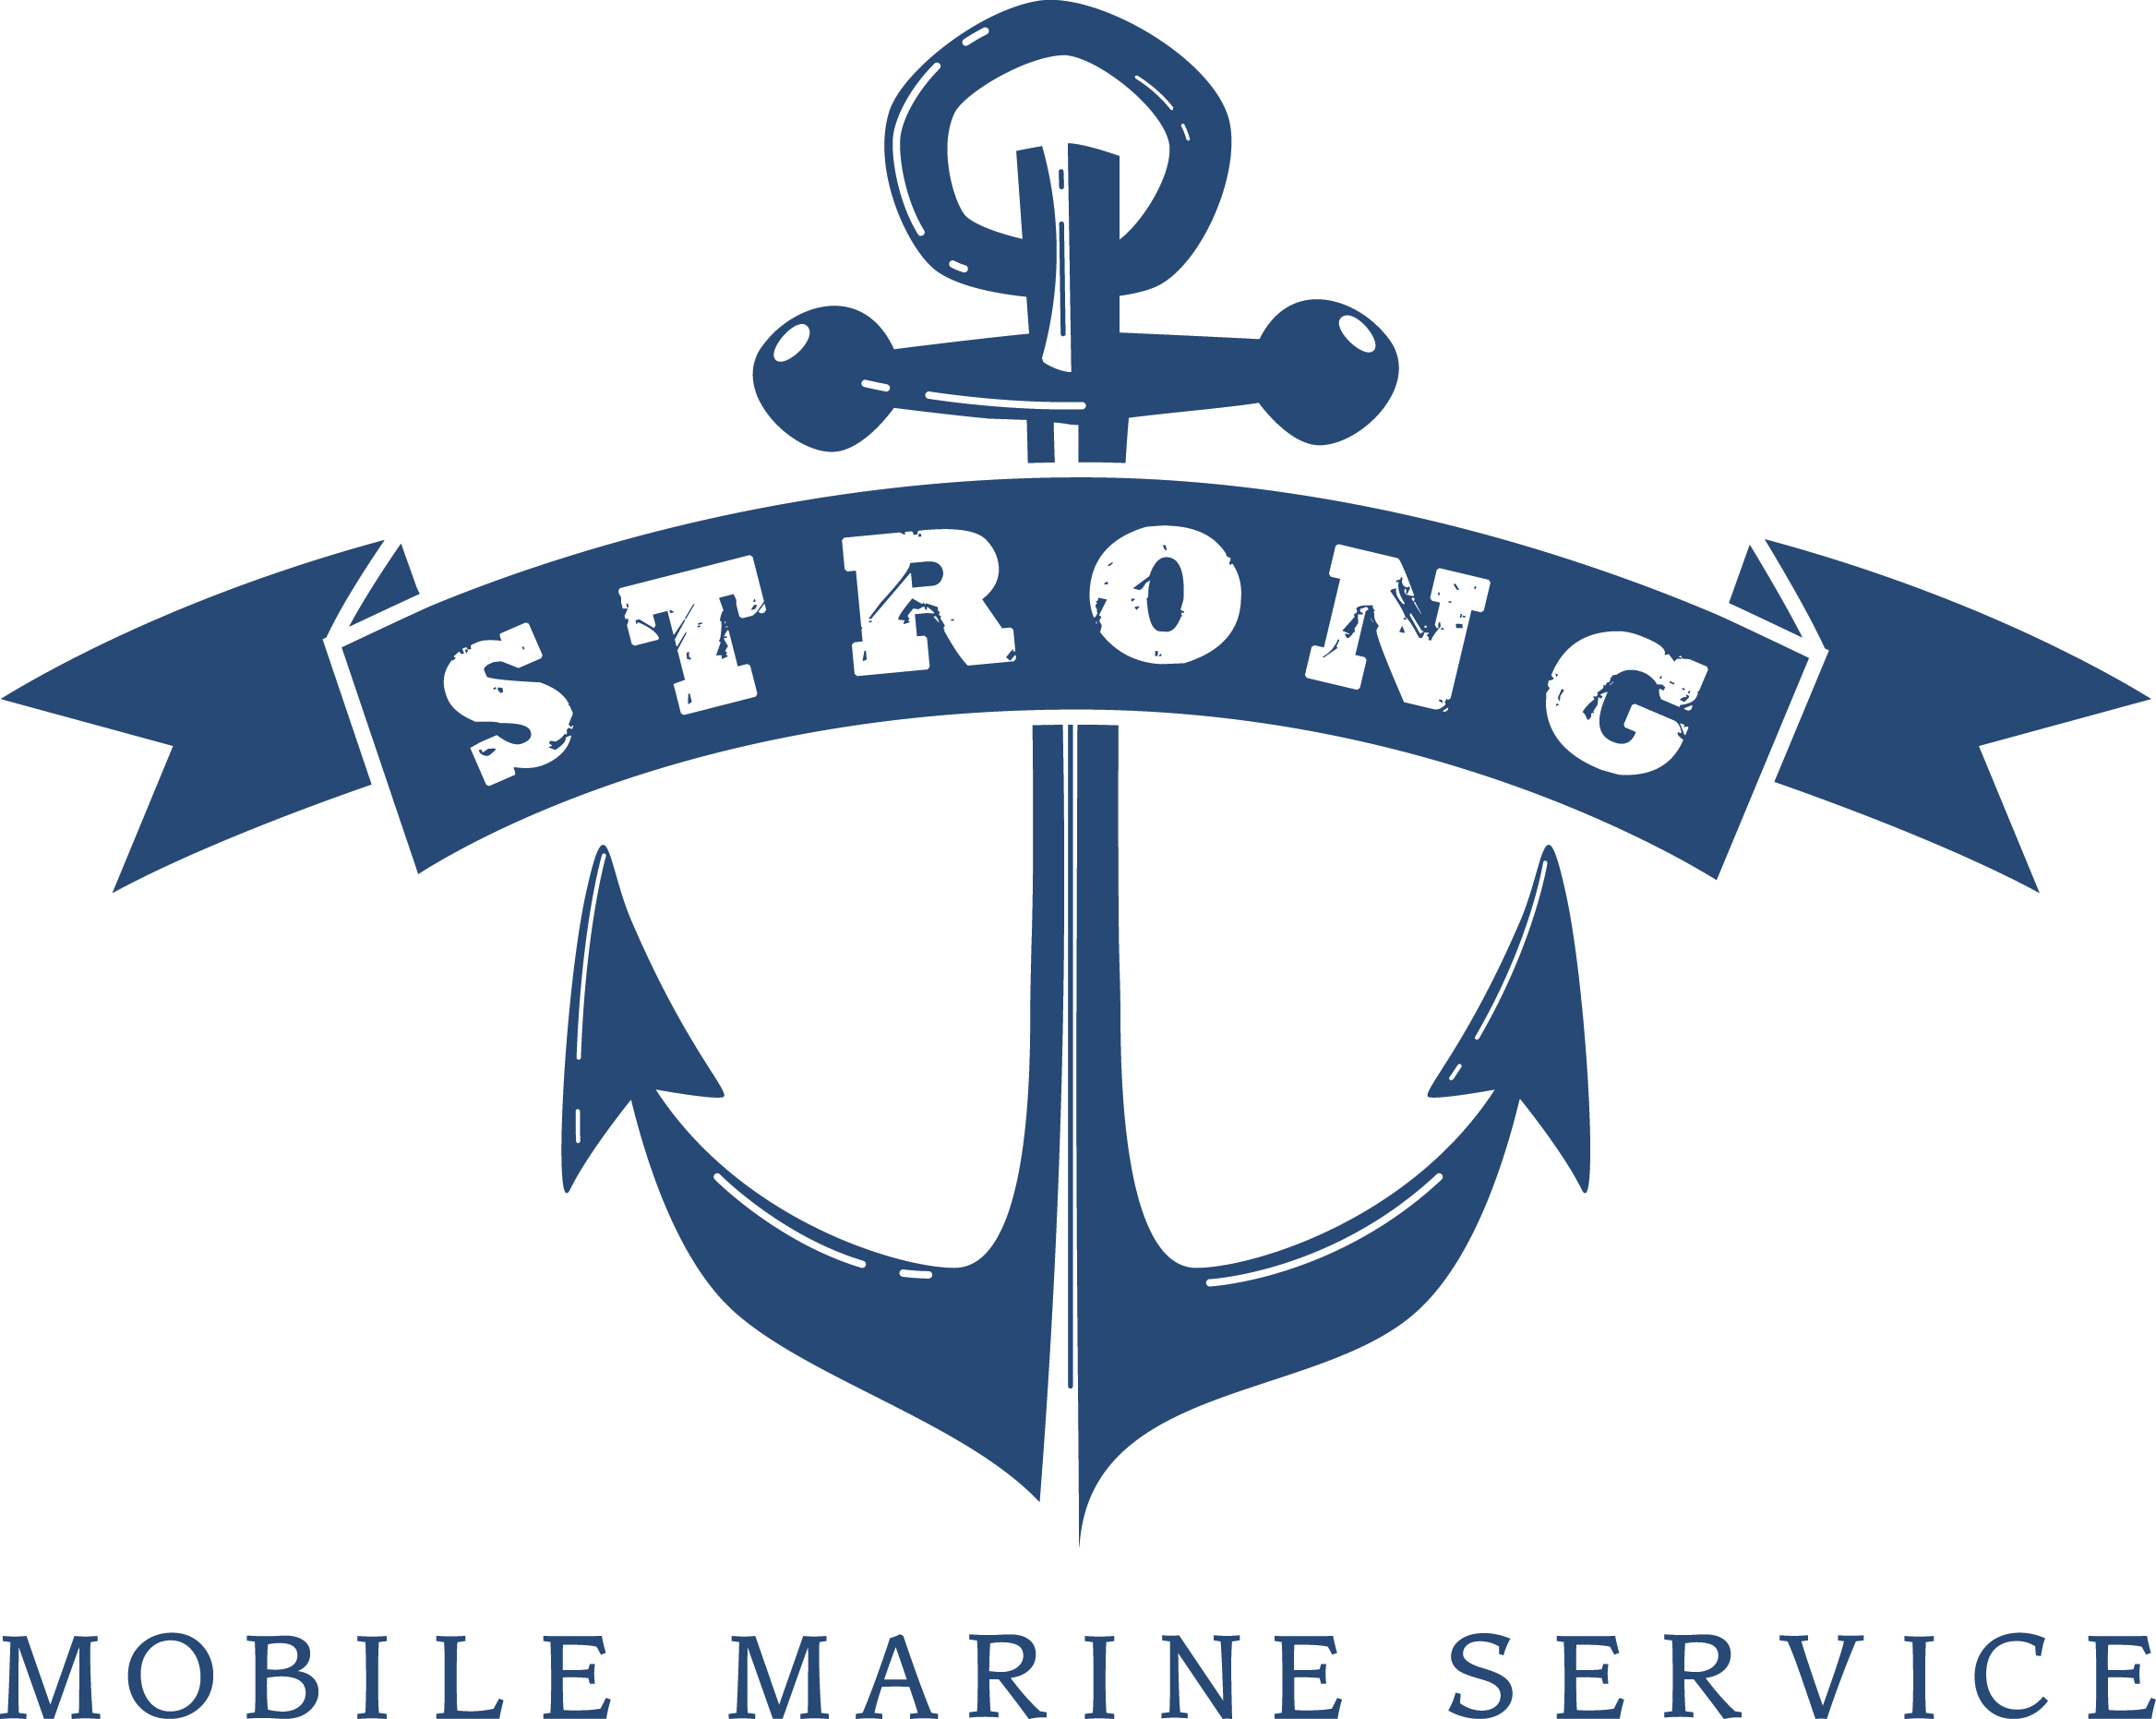 Strong Mobile Marine Service